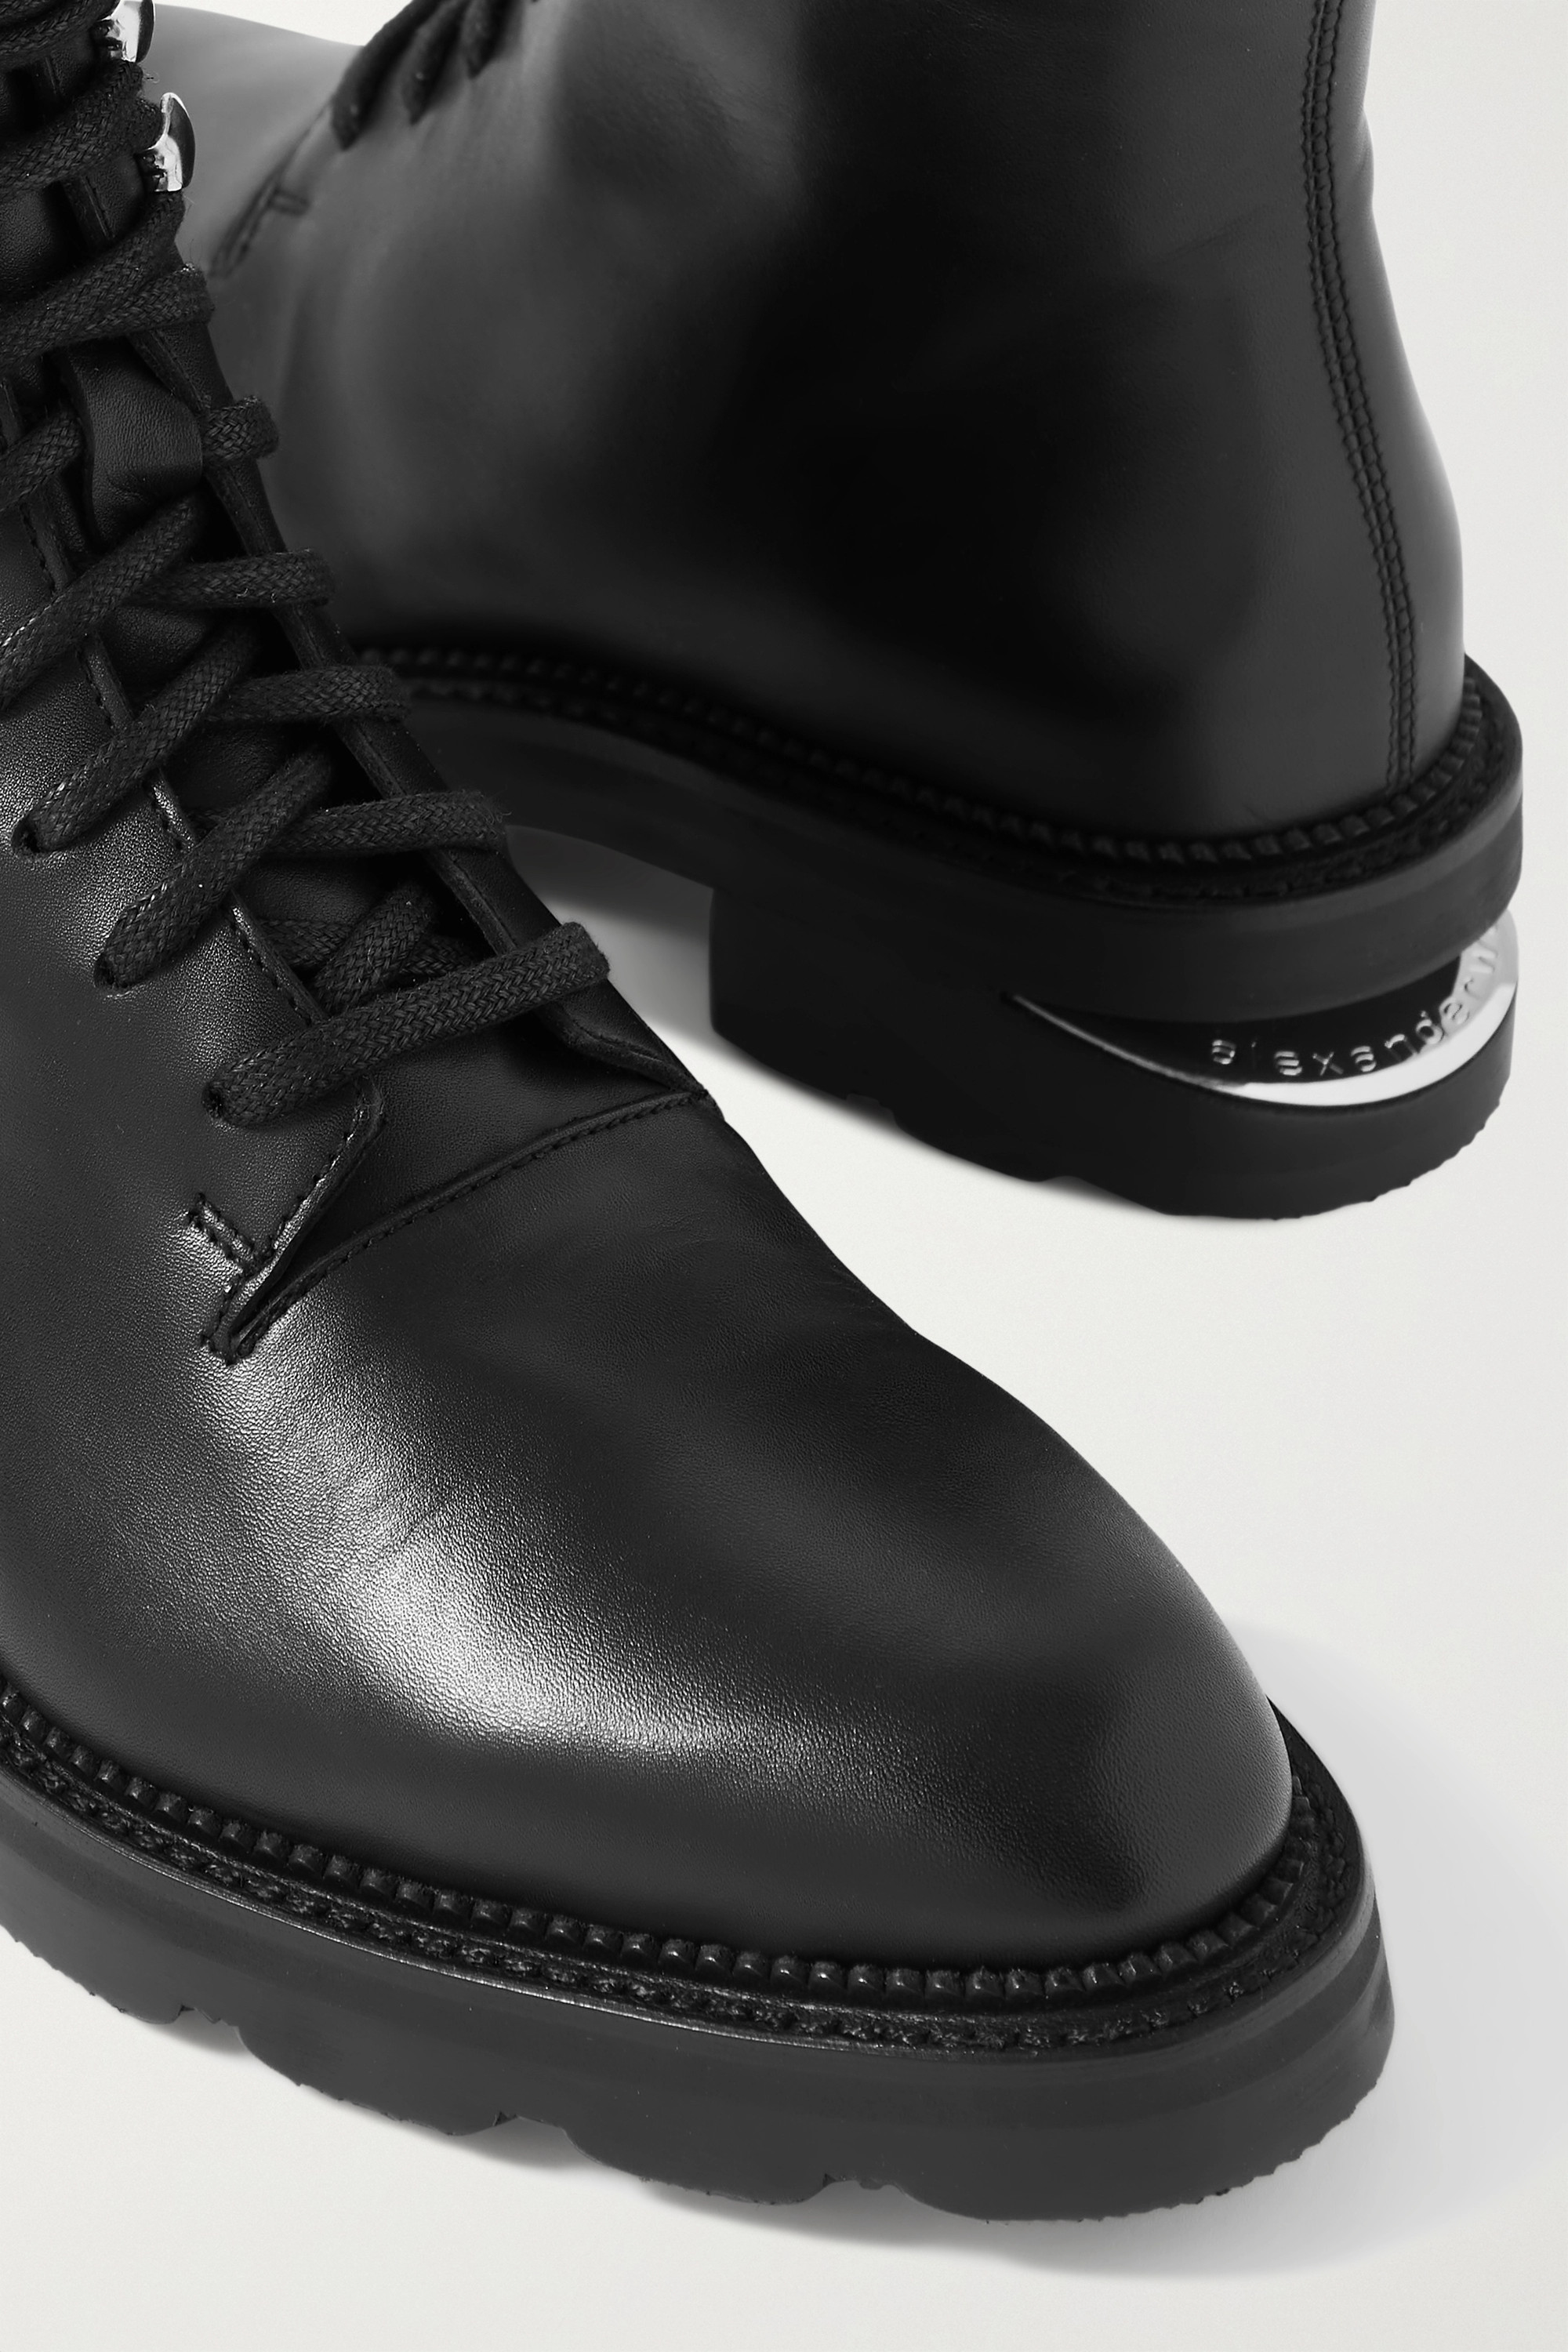 Alexander Wang Andy shearling-trimmed leather ankle boots